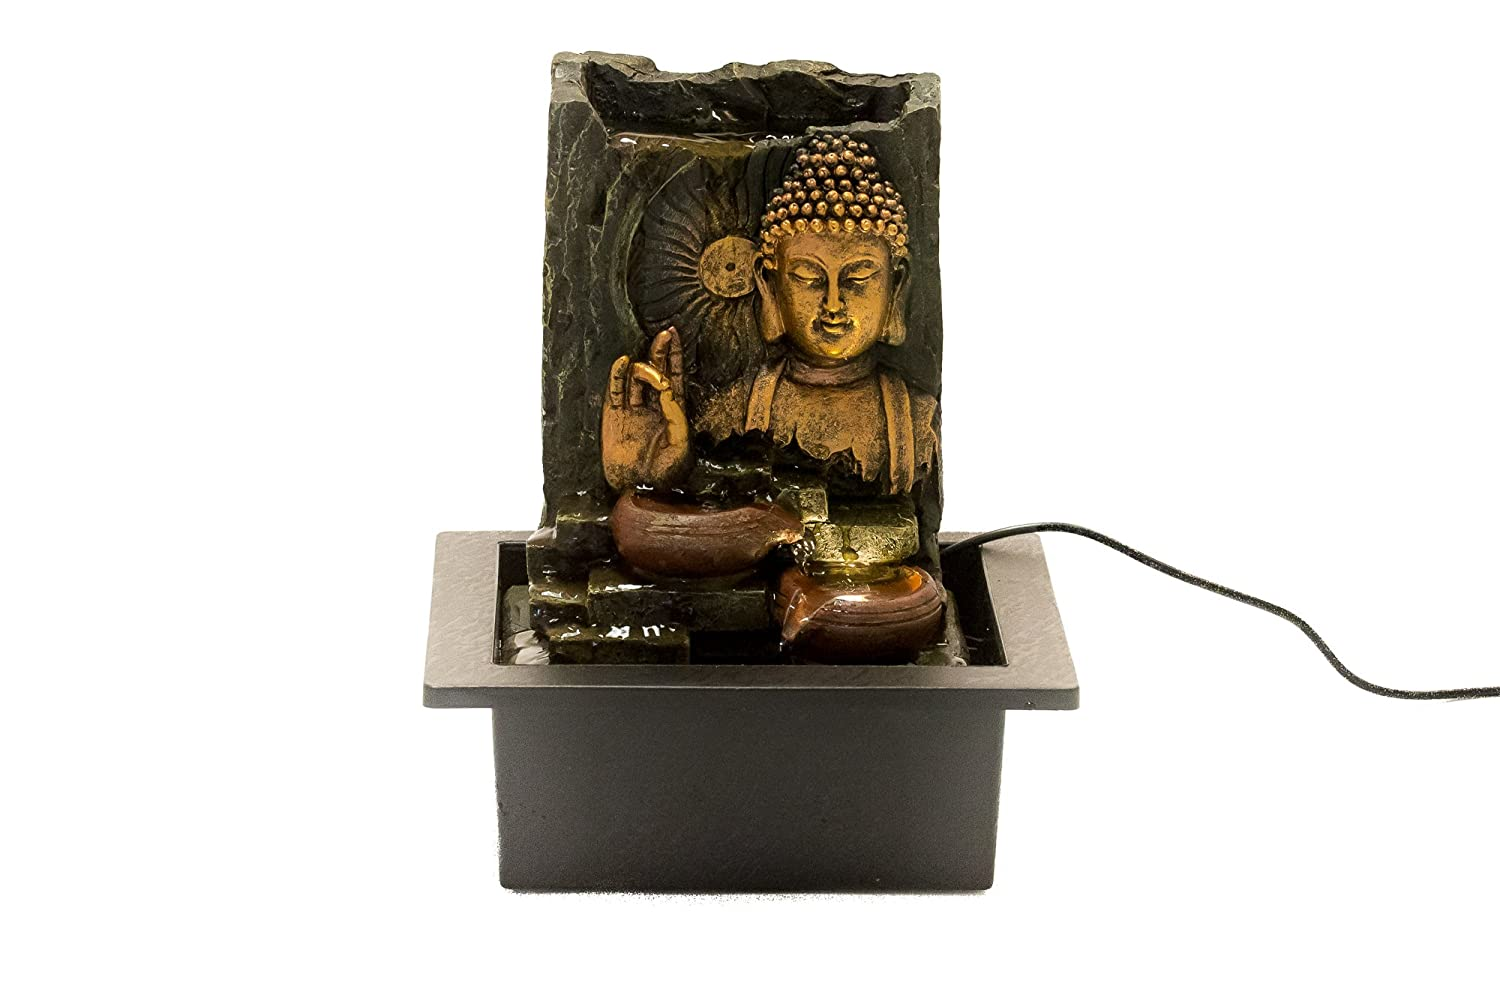 Buddha Hand Gestures Indoor Fountain By ZENINFLUX- Polyresin Water Fountain With Lighting System- Electric Pump- Easy Installation- Relaxing & Calming- Soothing & Ambient Effect- Size:L21xW17xH25cm topfusionworld Ltd